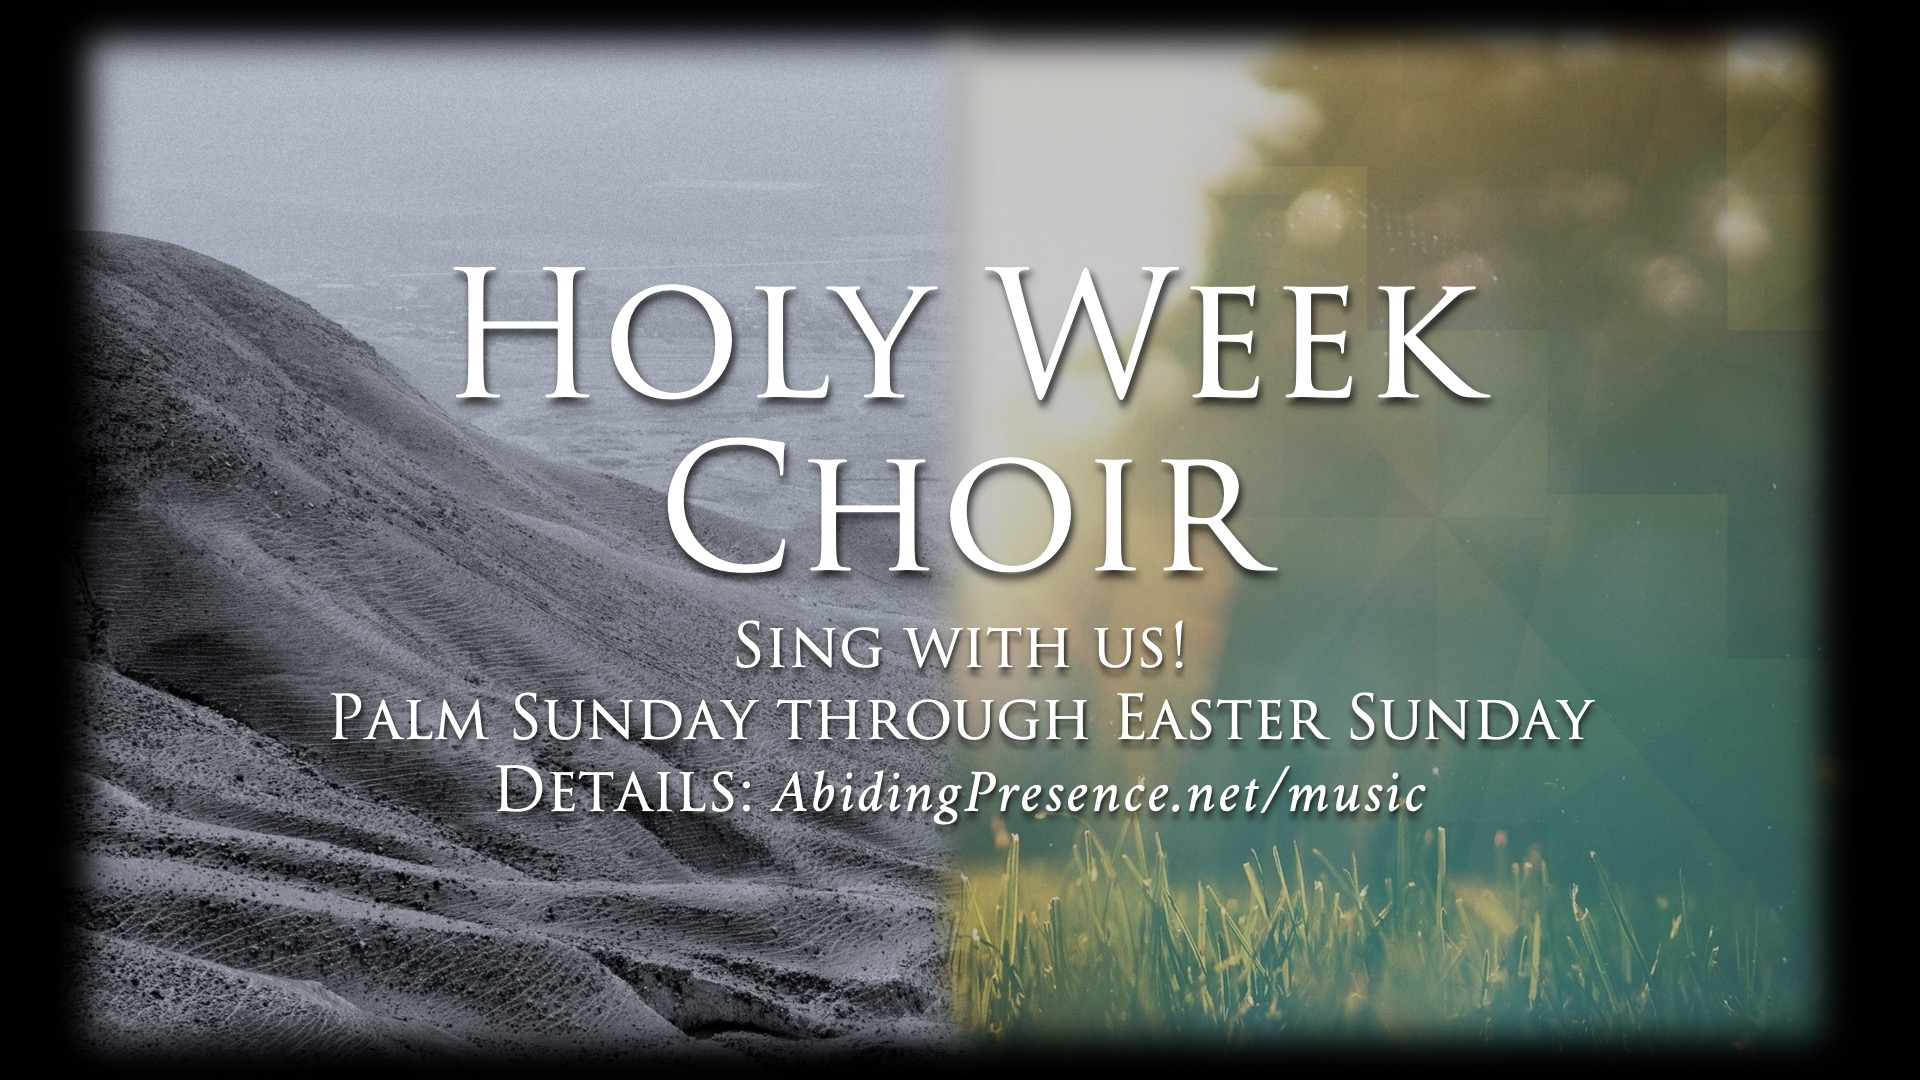 Holy Week Choir slide 2019 v1.jpg